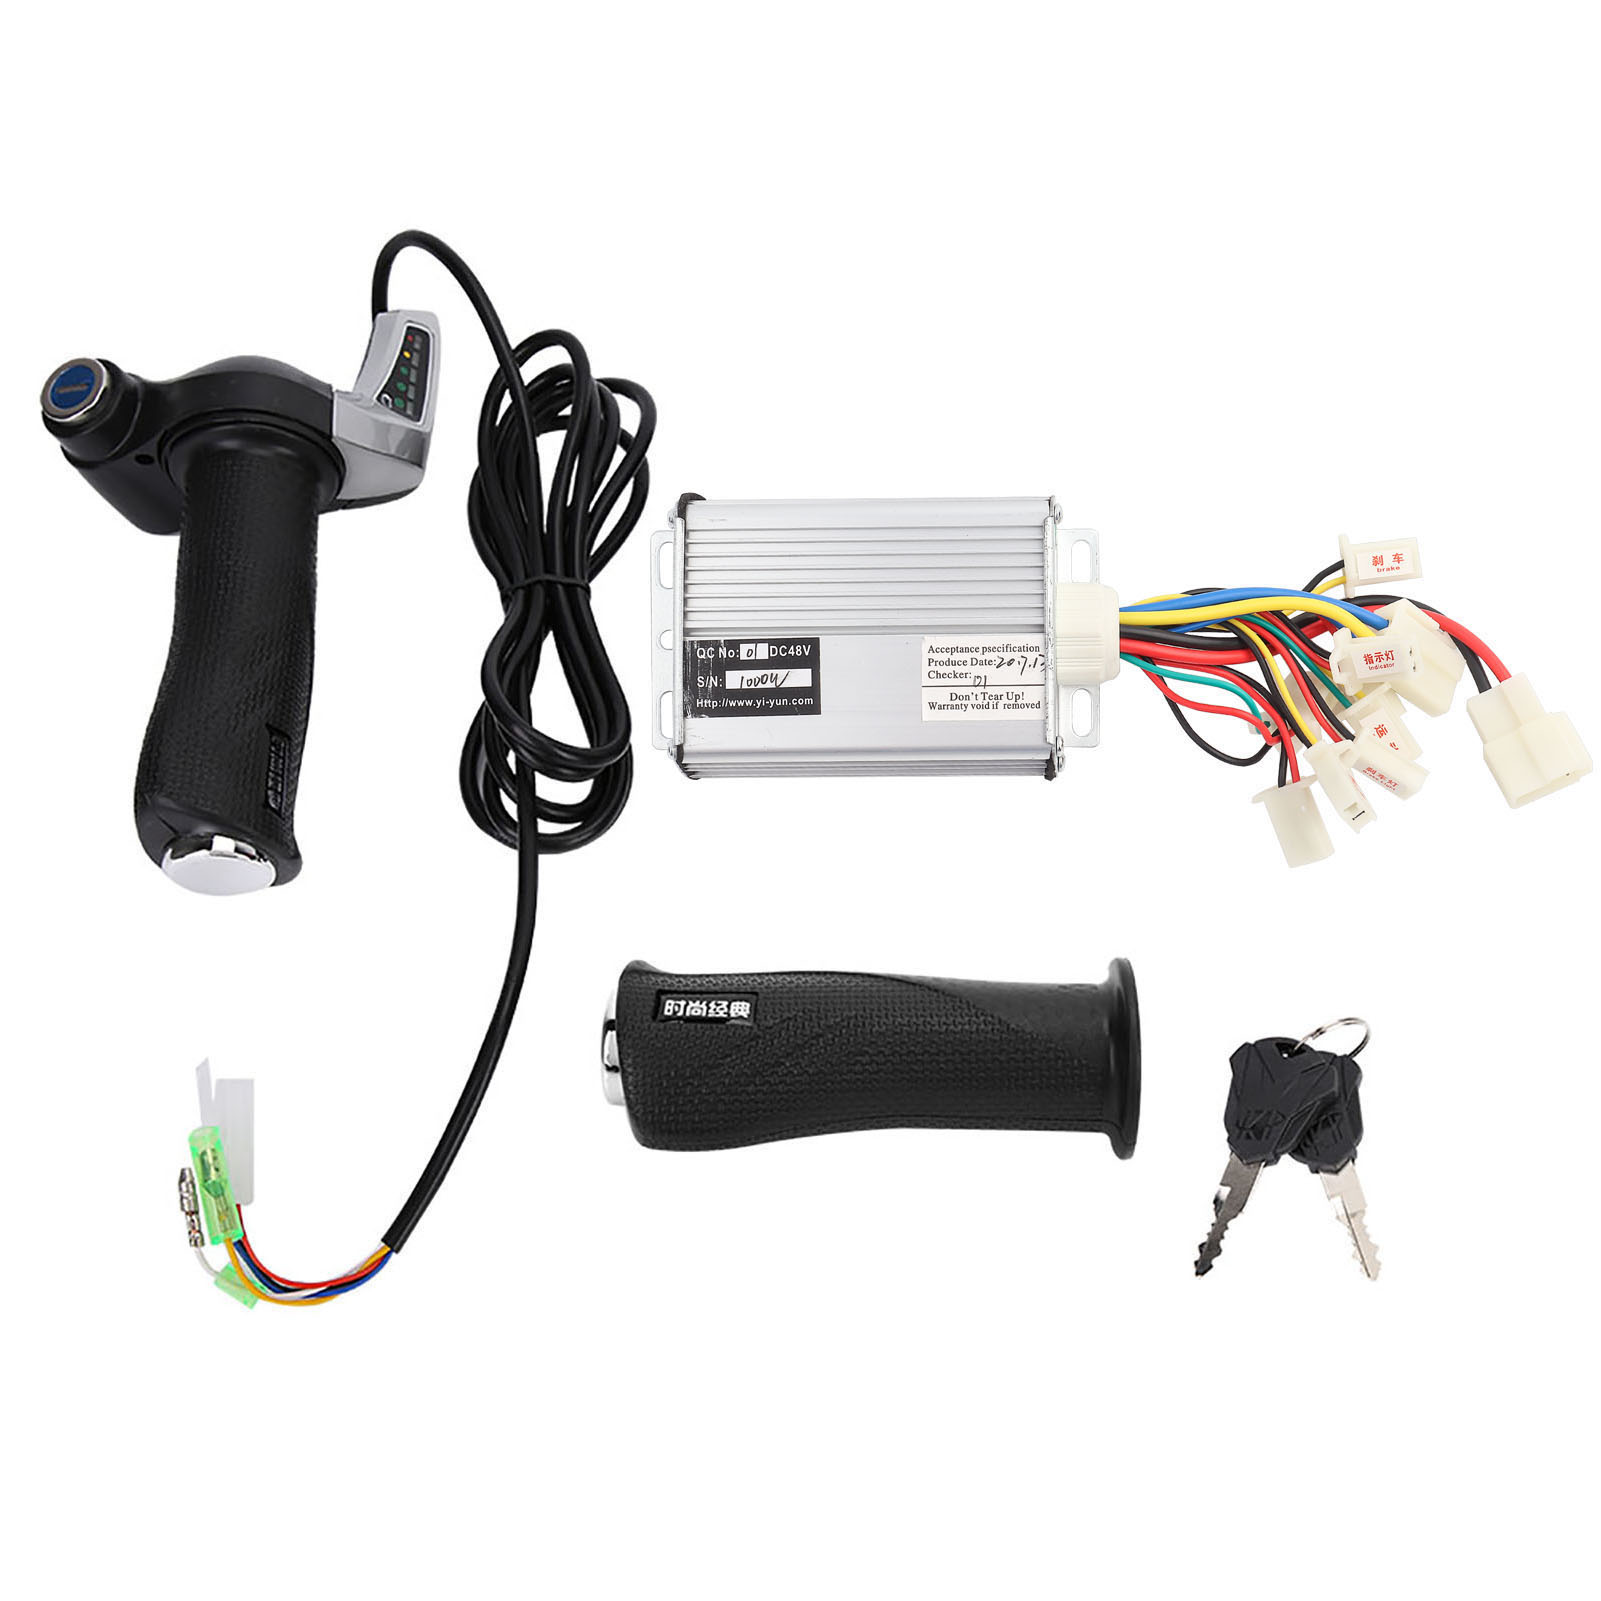 500W-1000W-Motor-Brushed-Speed-Controller-Box-for-Electric-Bicycle-amp-Scooter-Bike thumbnail 26